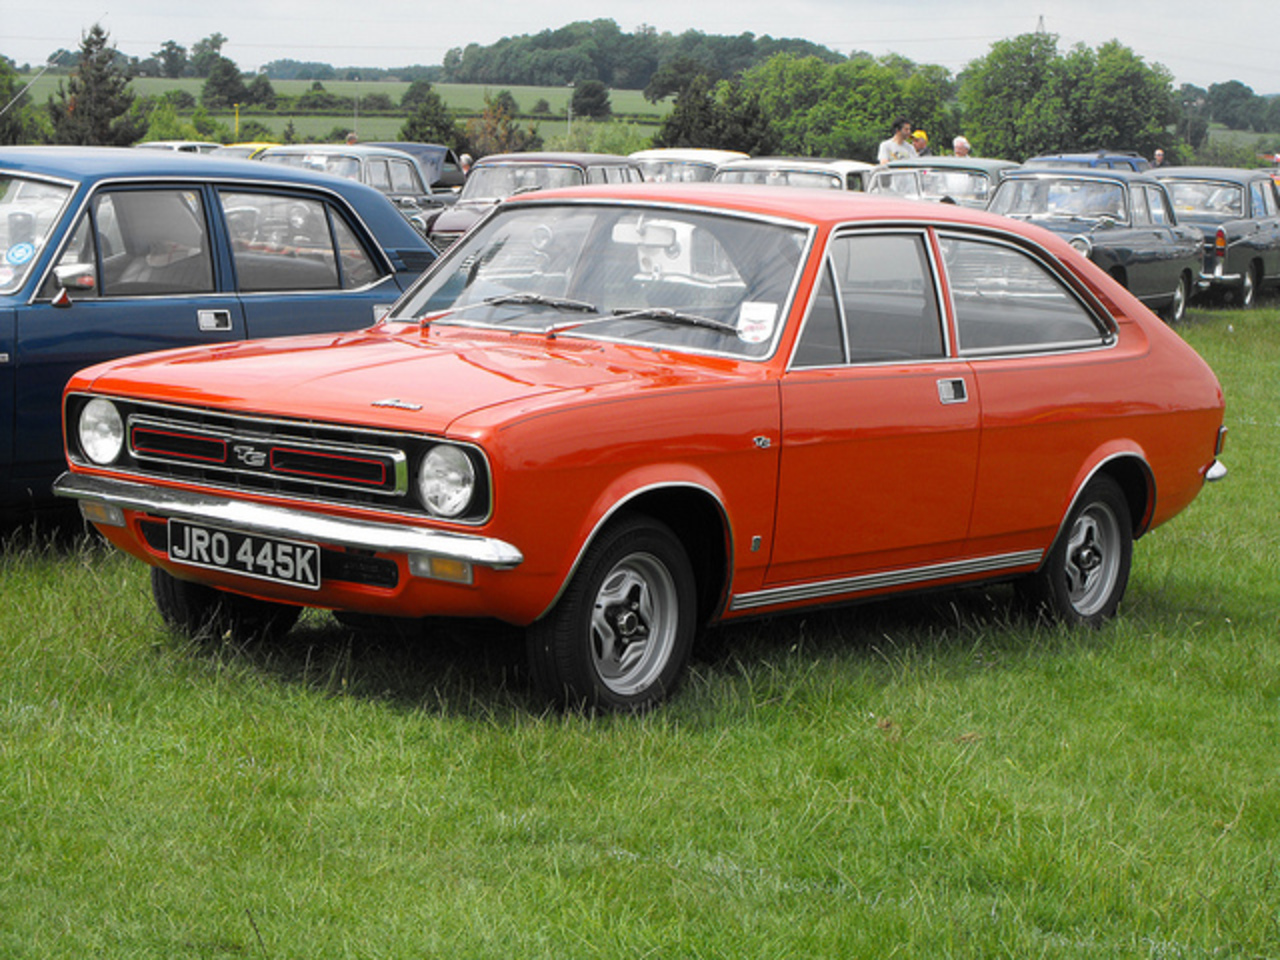 Morris Marina 1.8TC Coupe - JRO 445K | Flickr - Photo Sharing!